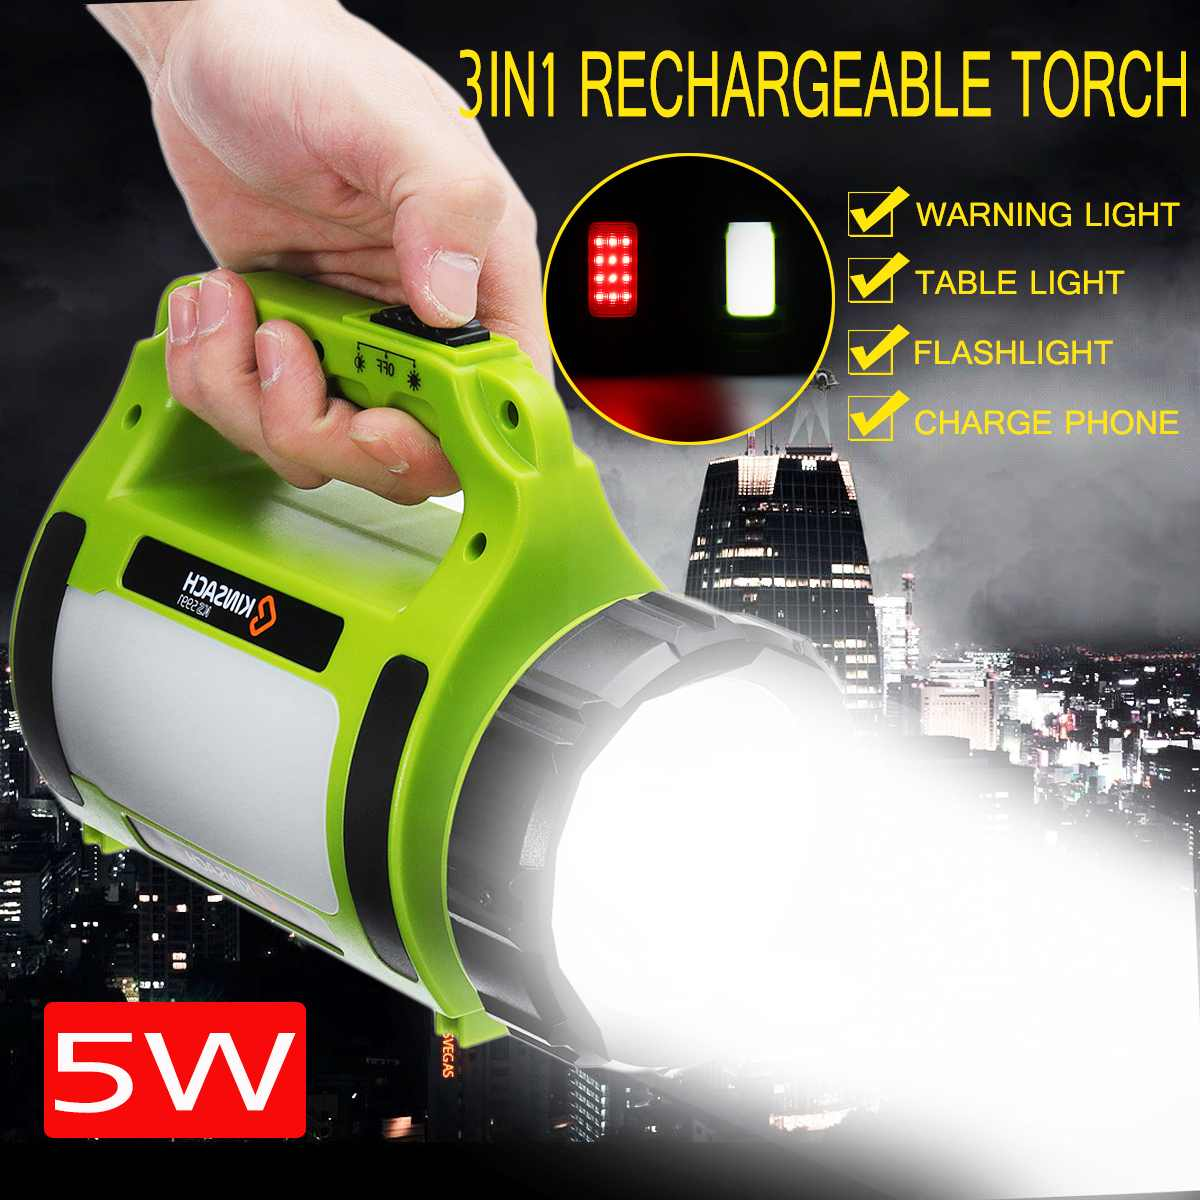 Portable light rechargeable led spotlights camping tent lantern searchlight hand held spotlight lamp with side light Power Bank